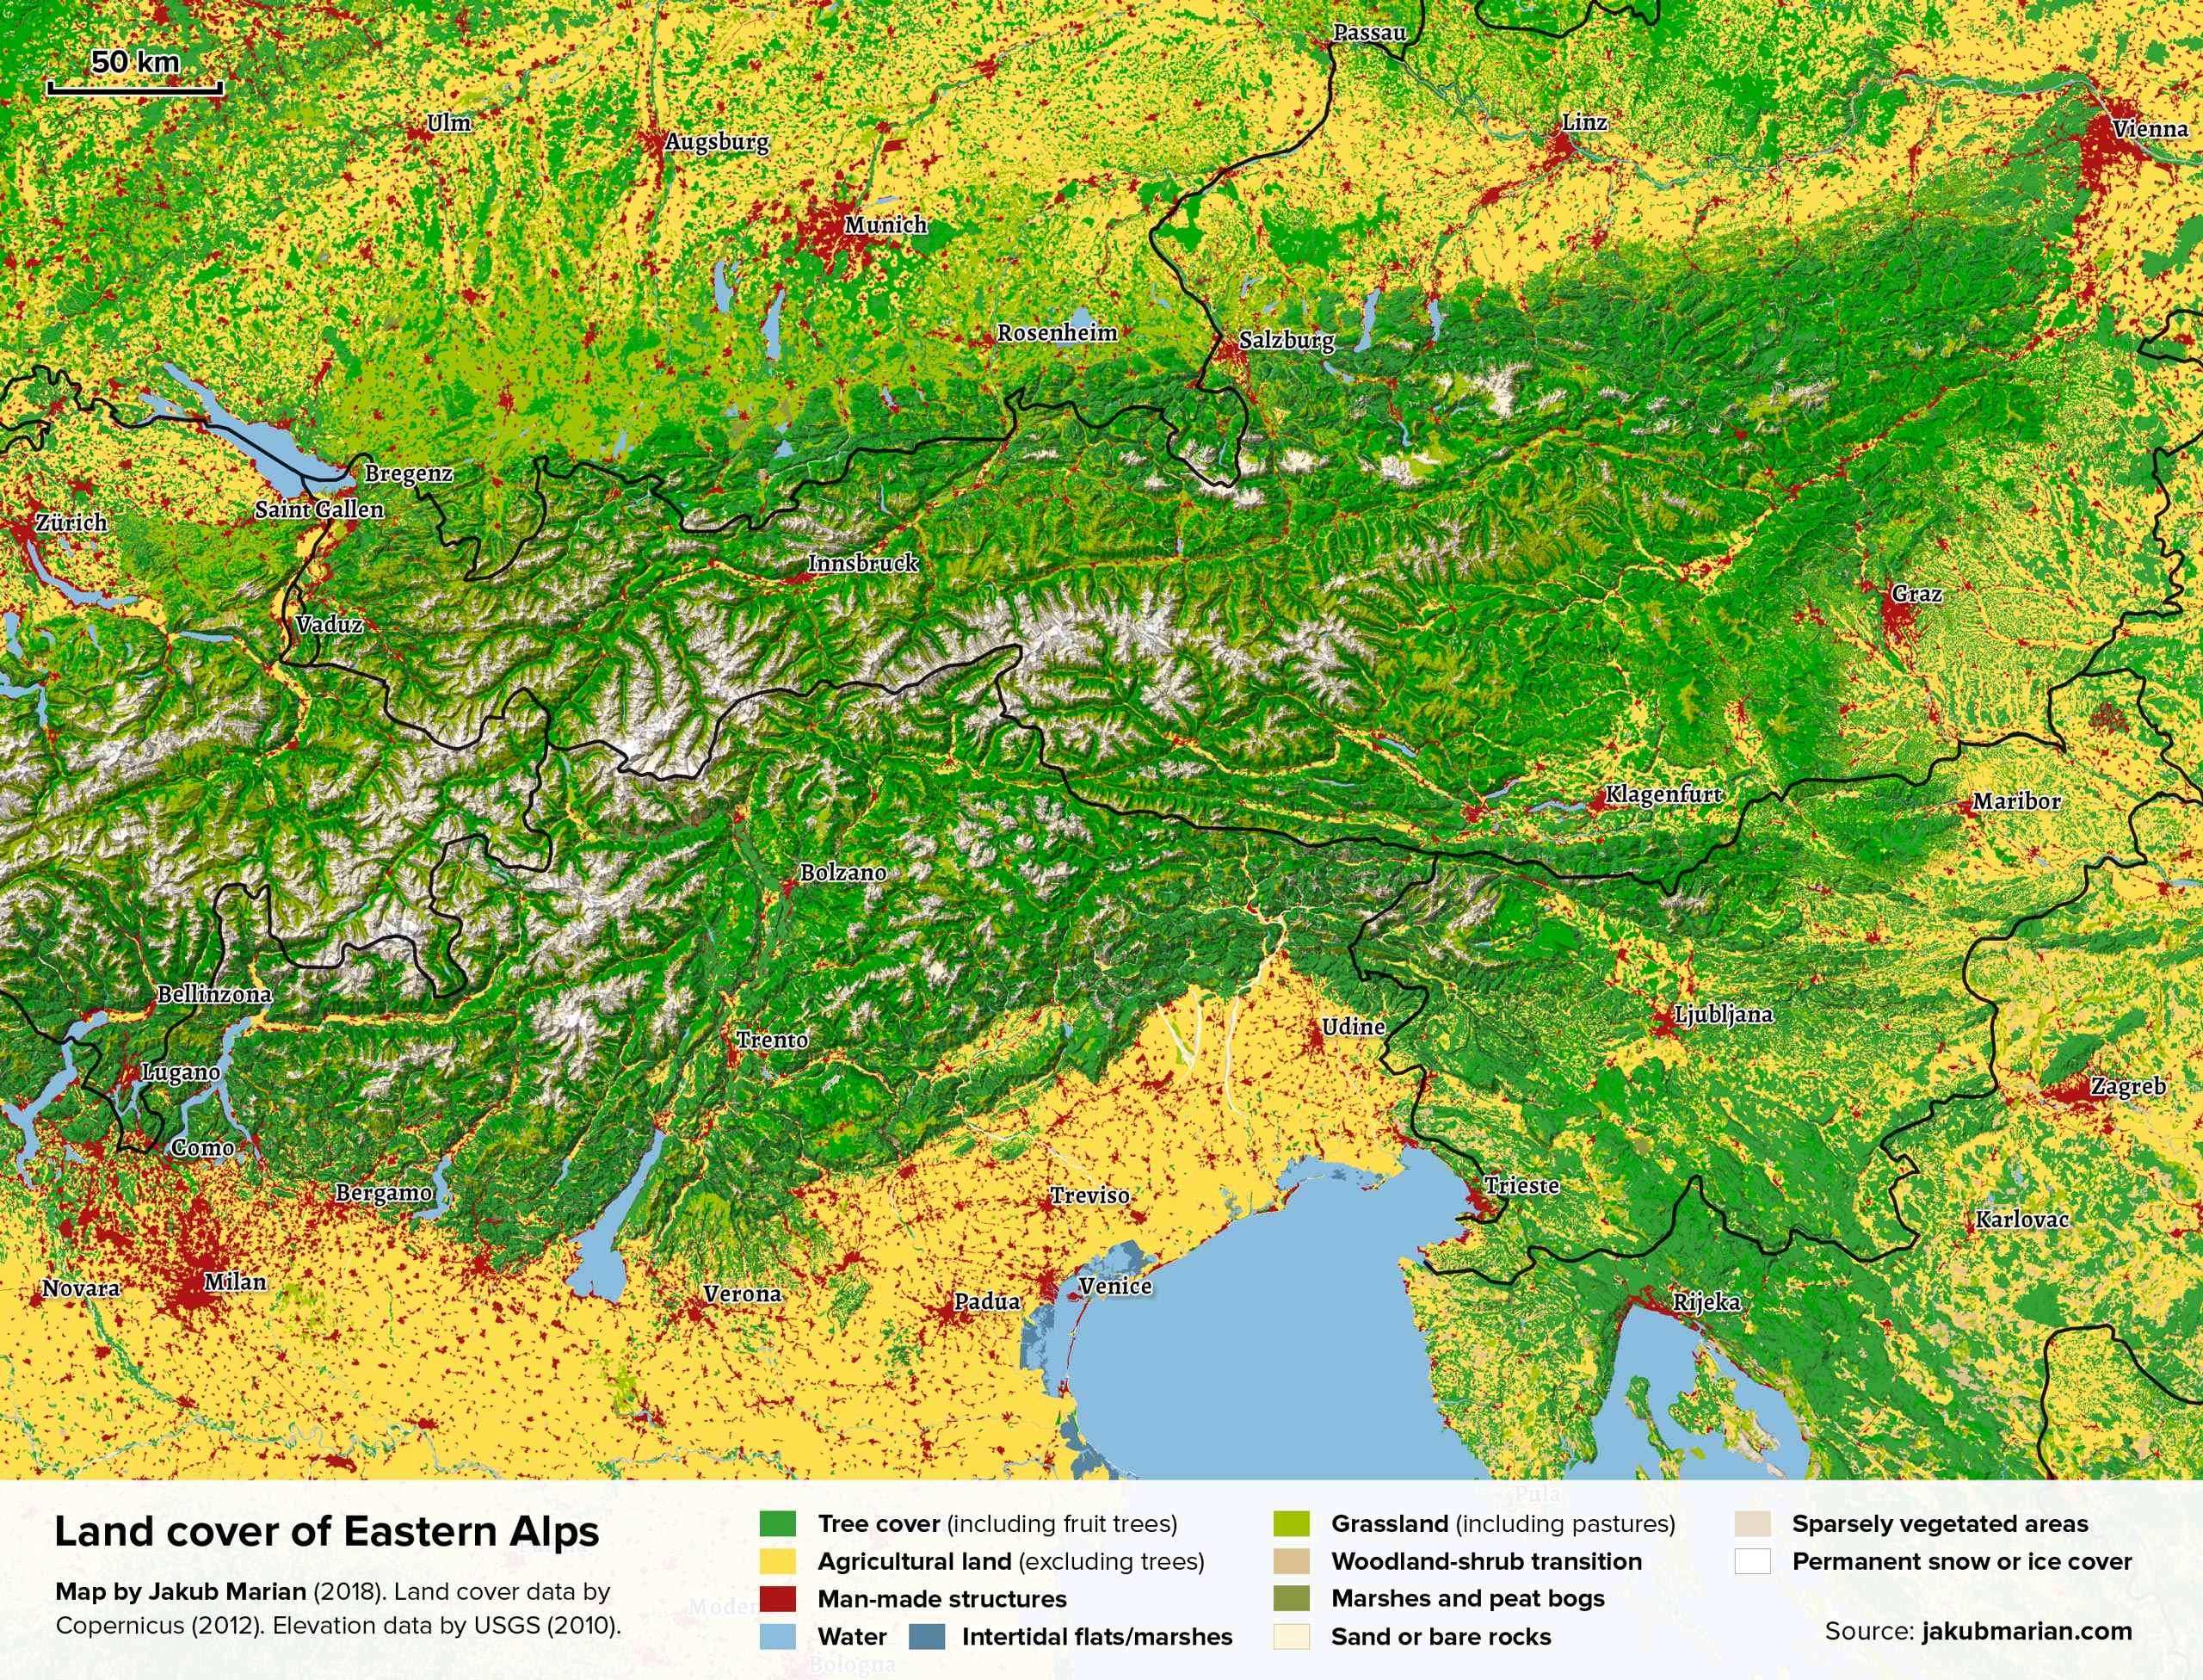 Land cover of Eastern Alps